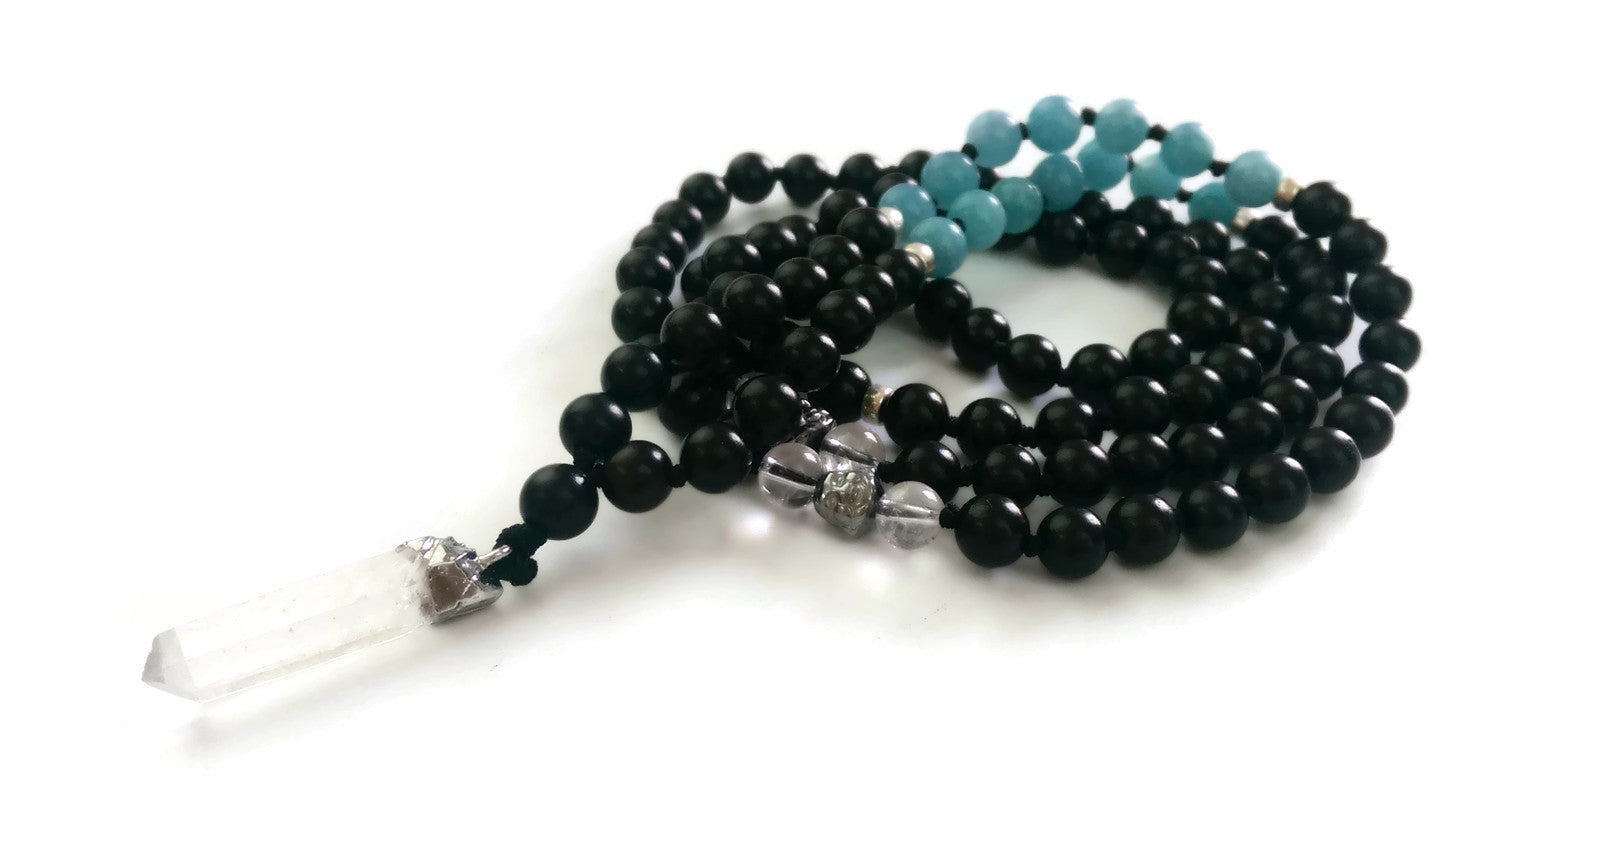 Fresh Start Chakra Collection 8mm Aquamarine Crystal Ebony wood Traditional Knotted 108 Meditation Mala Necklace Throat Chakra Raw Pendant